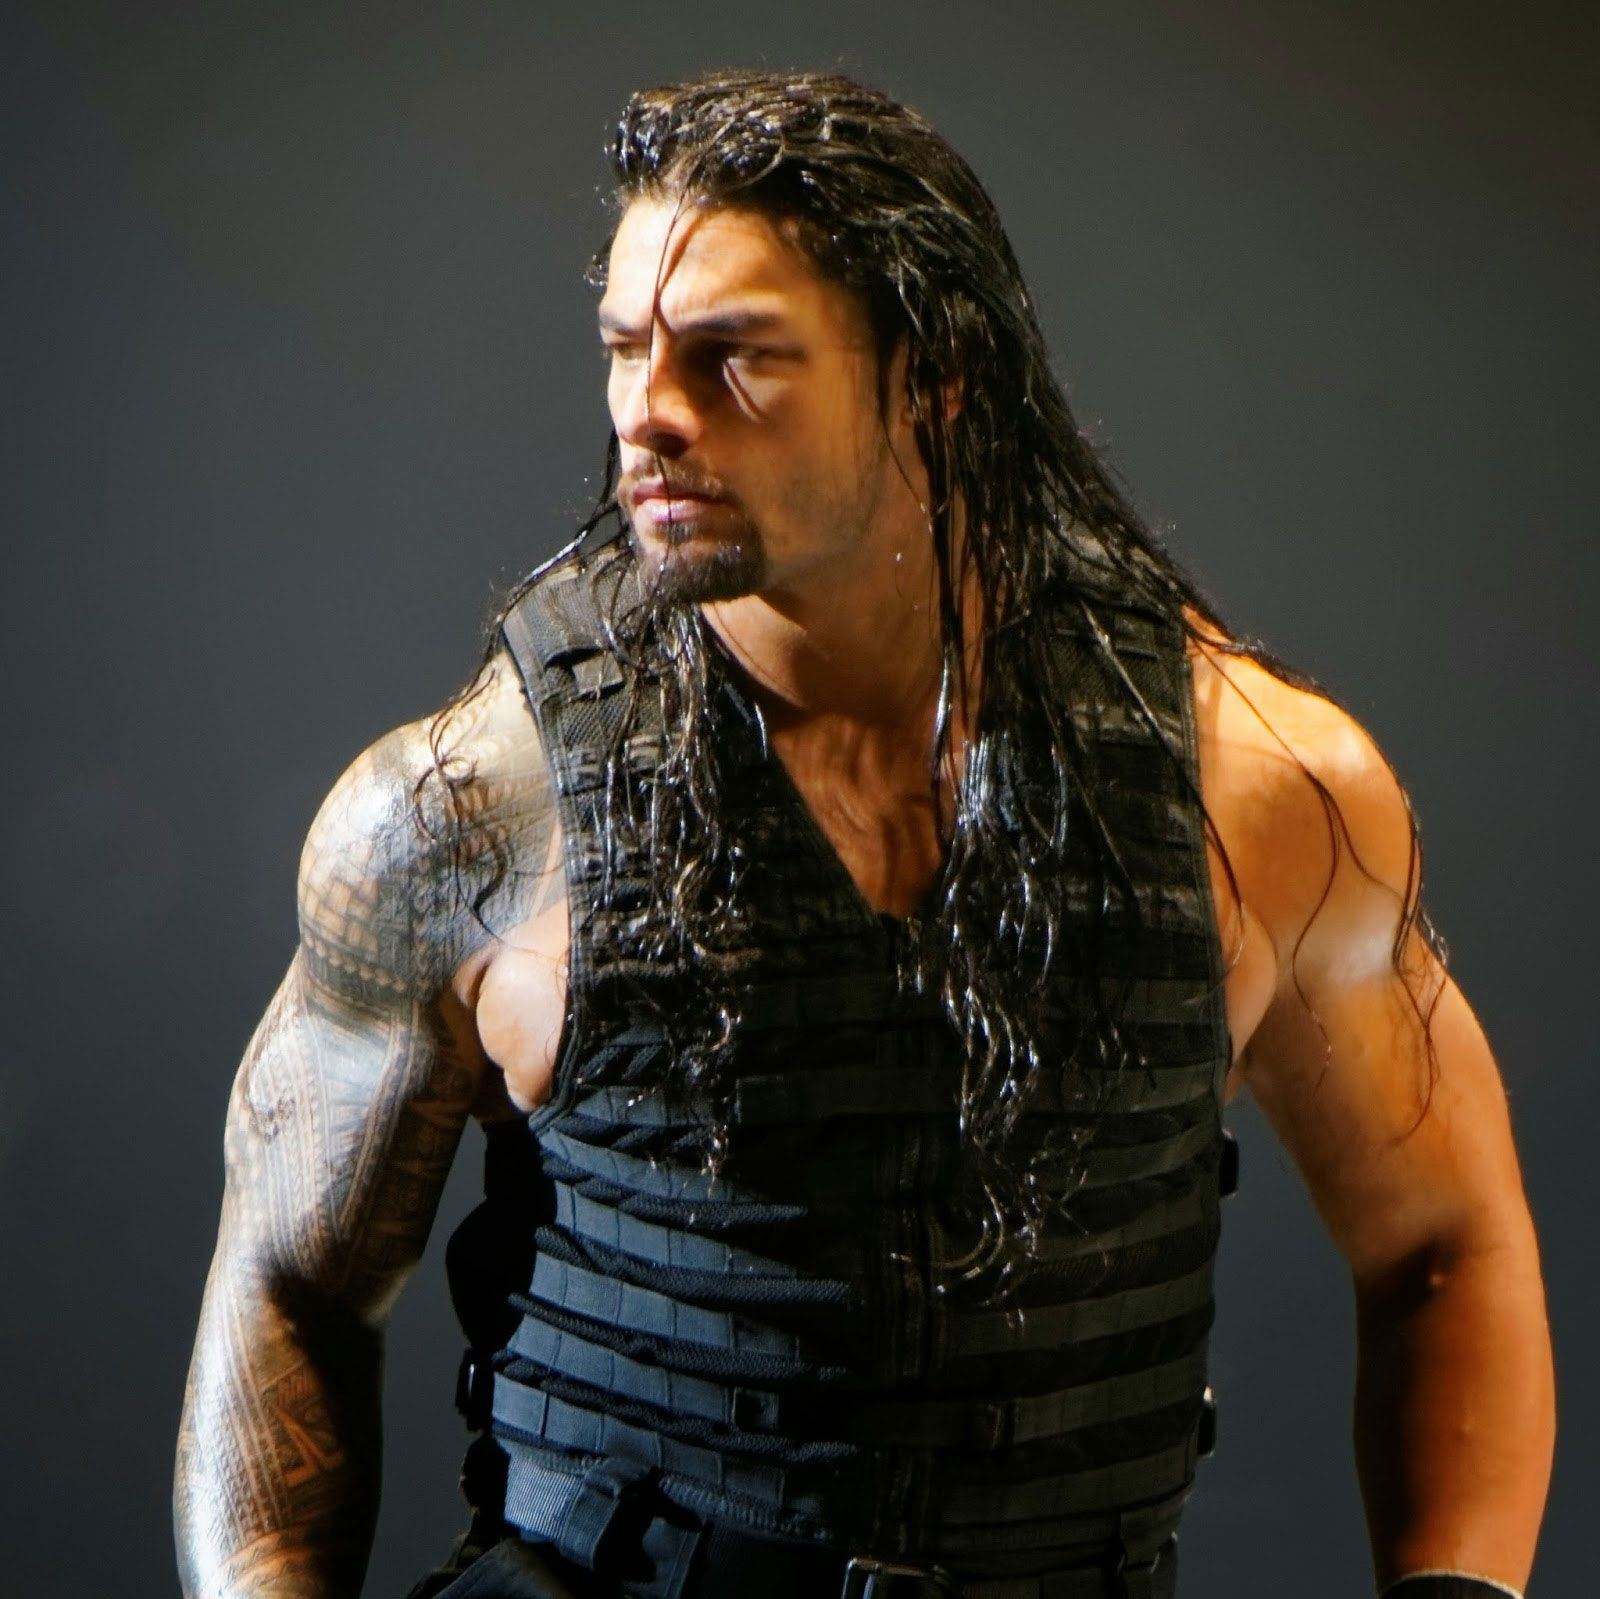 Download Wwe HD Wallpaper Download Gallery